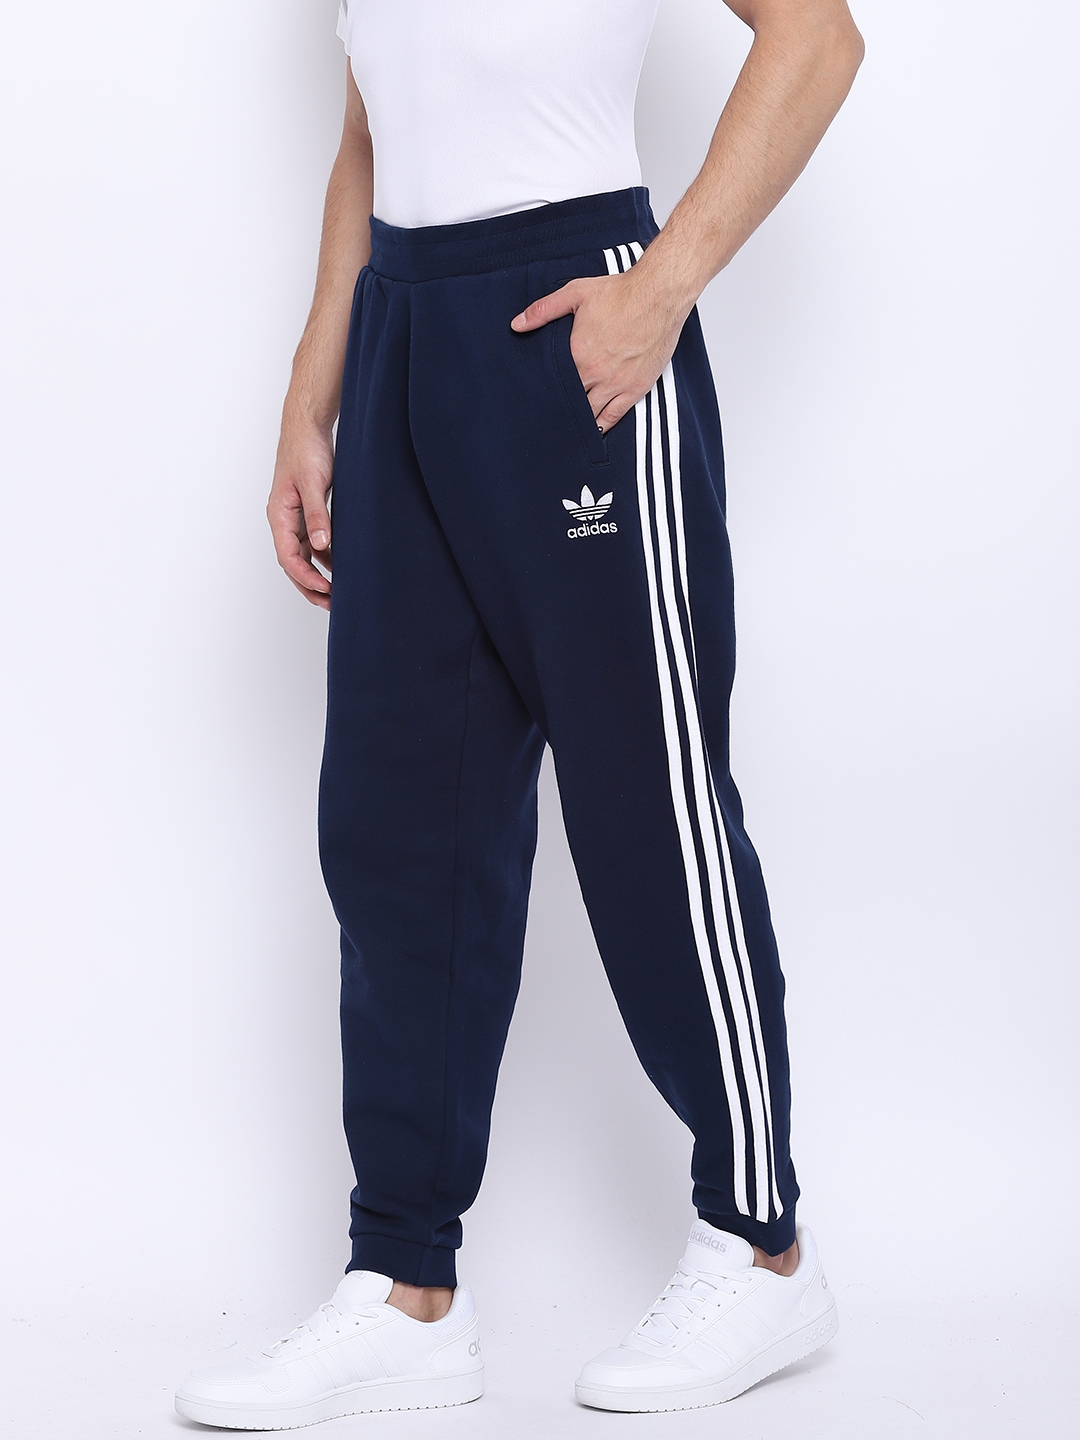 6d2b5f699c034 Buy ADIDAS Originals Men Navy Blue 3 Striped Solid Joggers - Track ...